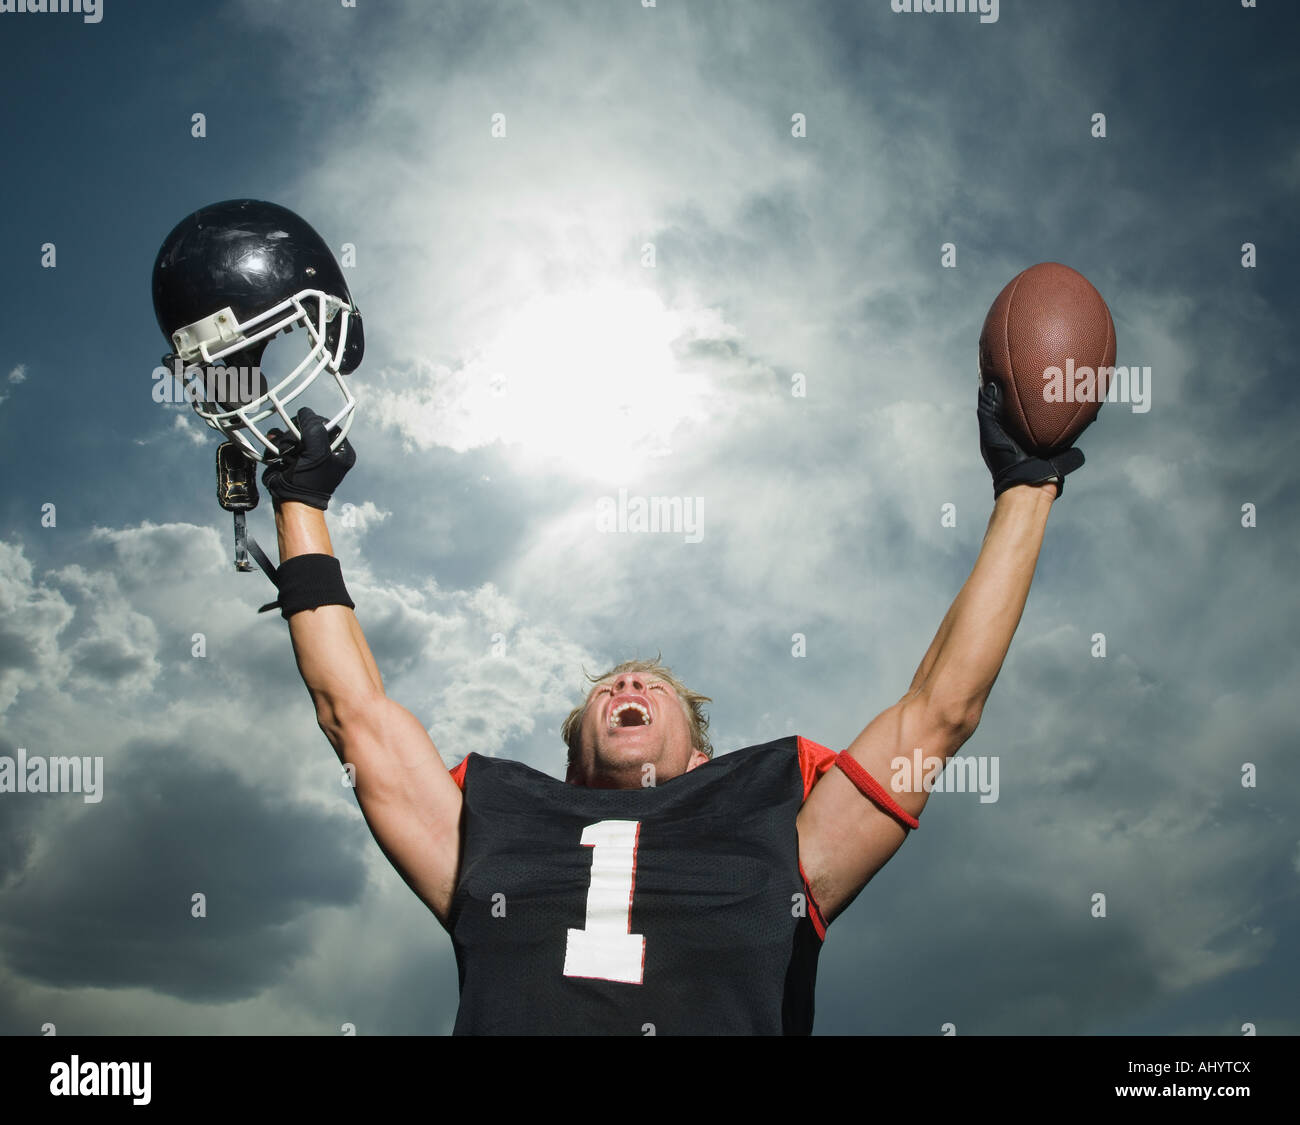 Low angle view of football player cheering - Stock Image